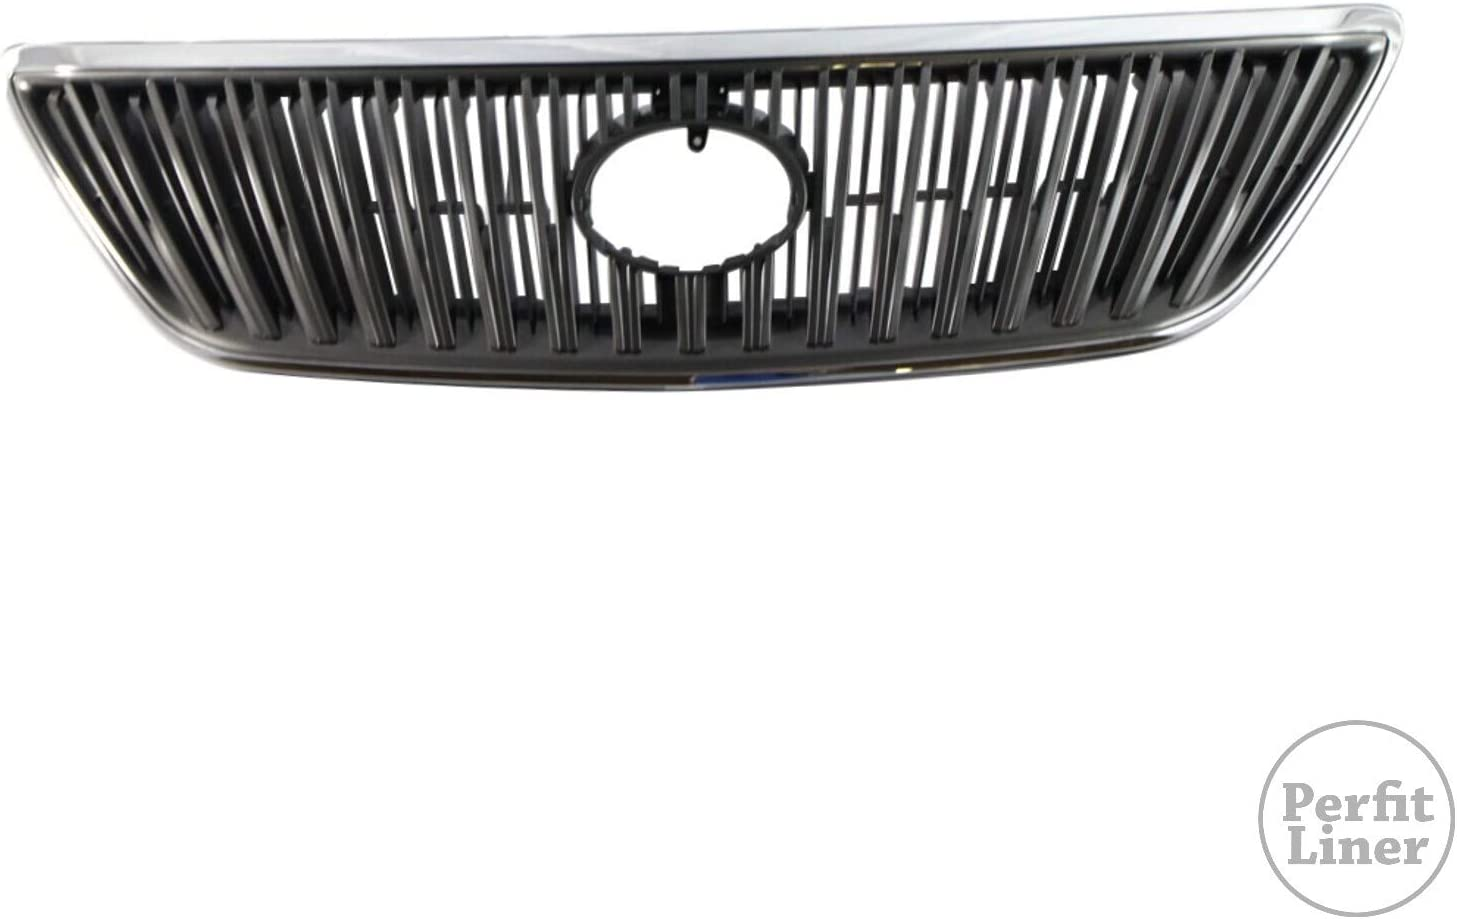 Perfit Liner New Front Gray Grille 1 year warranty Grill LEXUS With Compatible 2 Ultra-Cheap Deals